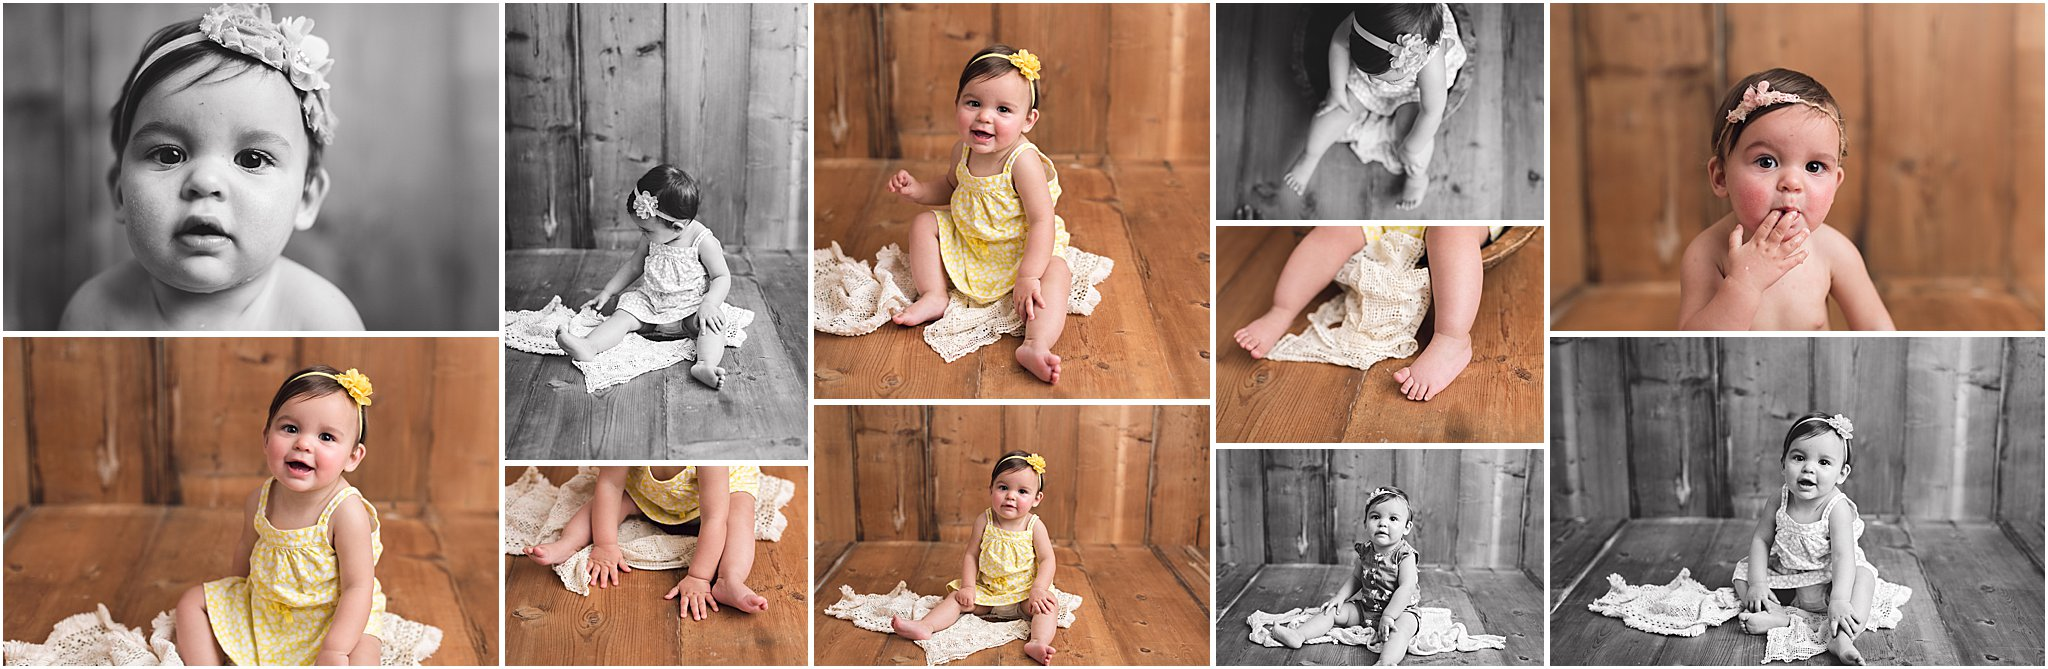 Caitlin Claire Studio 9 Month Photography